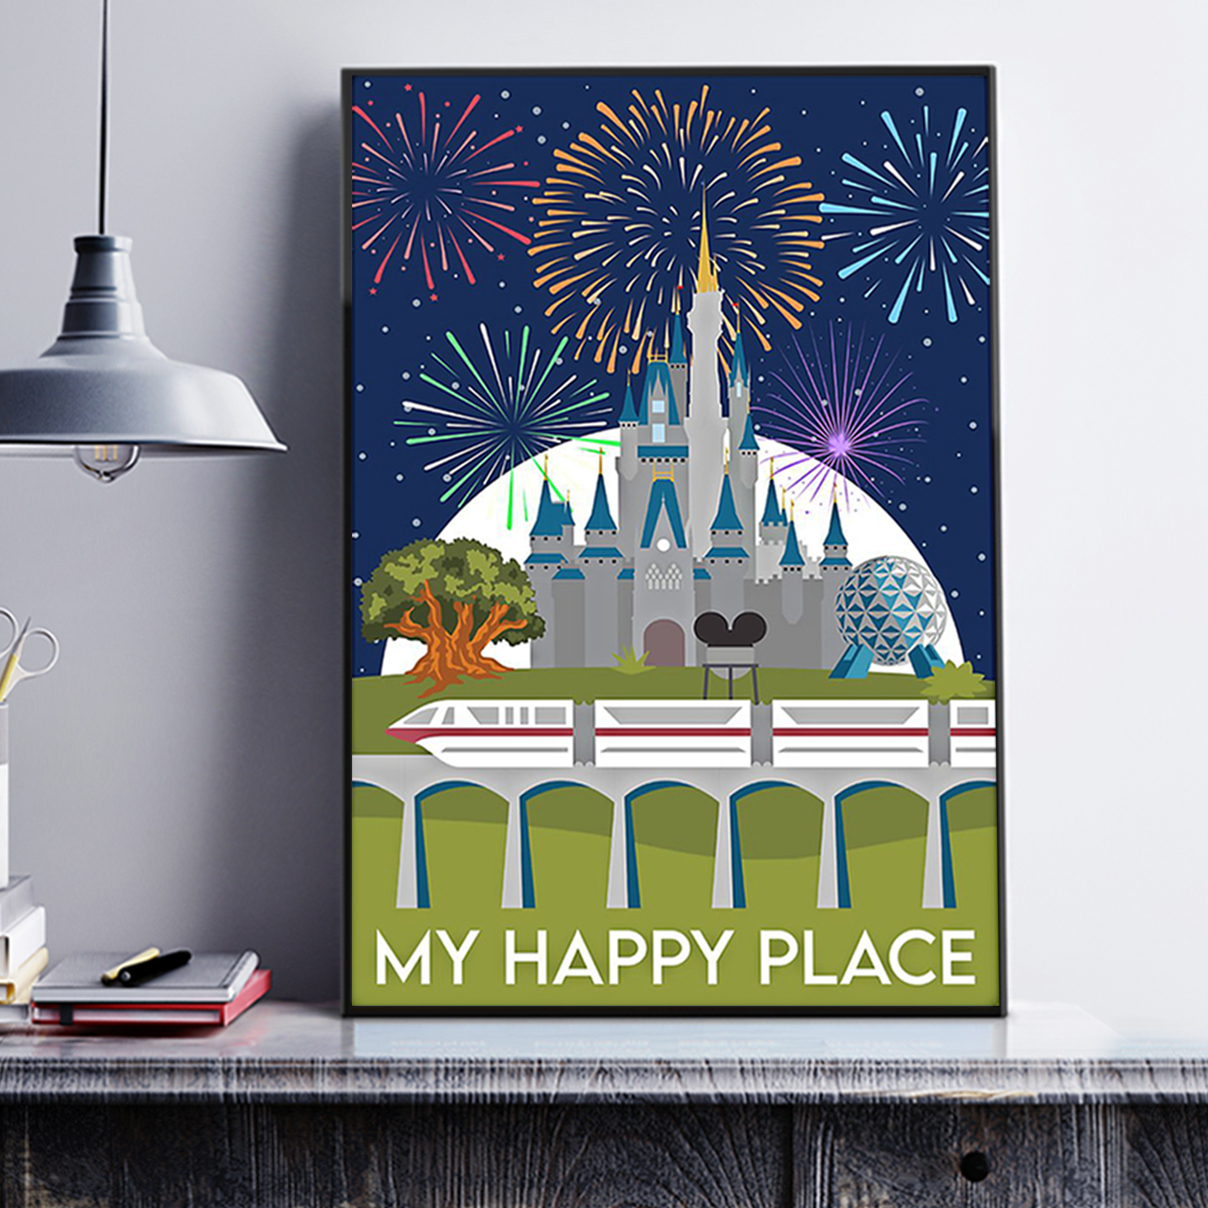 Disneyland My happy place poster A2